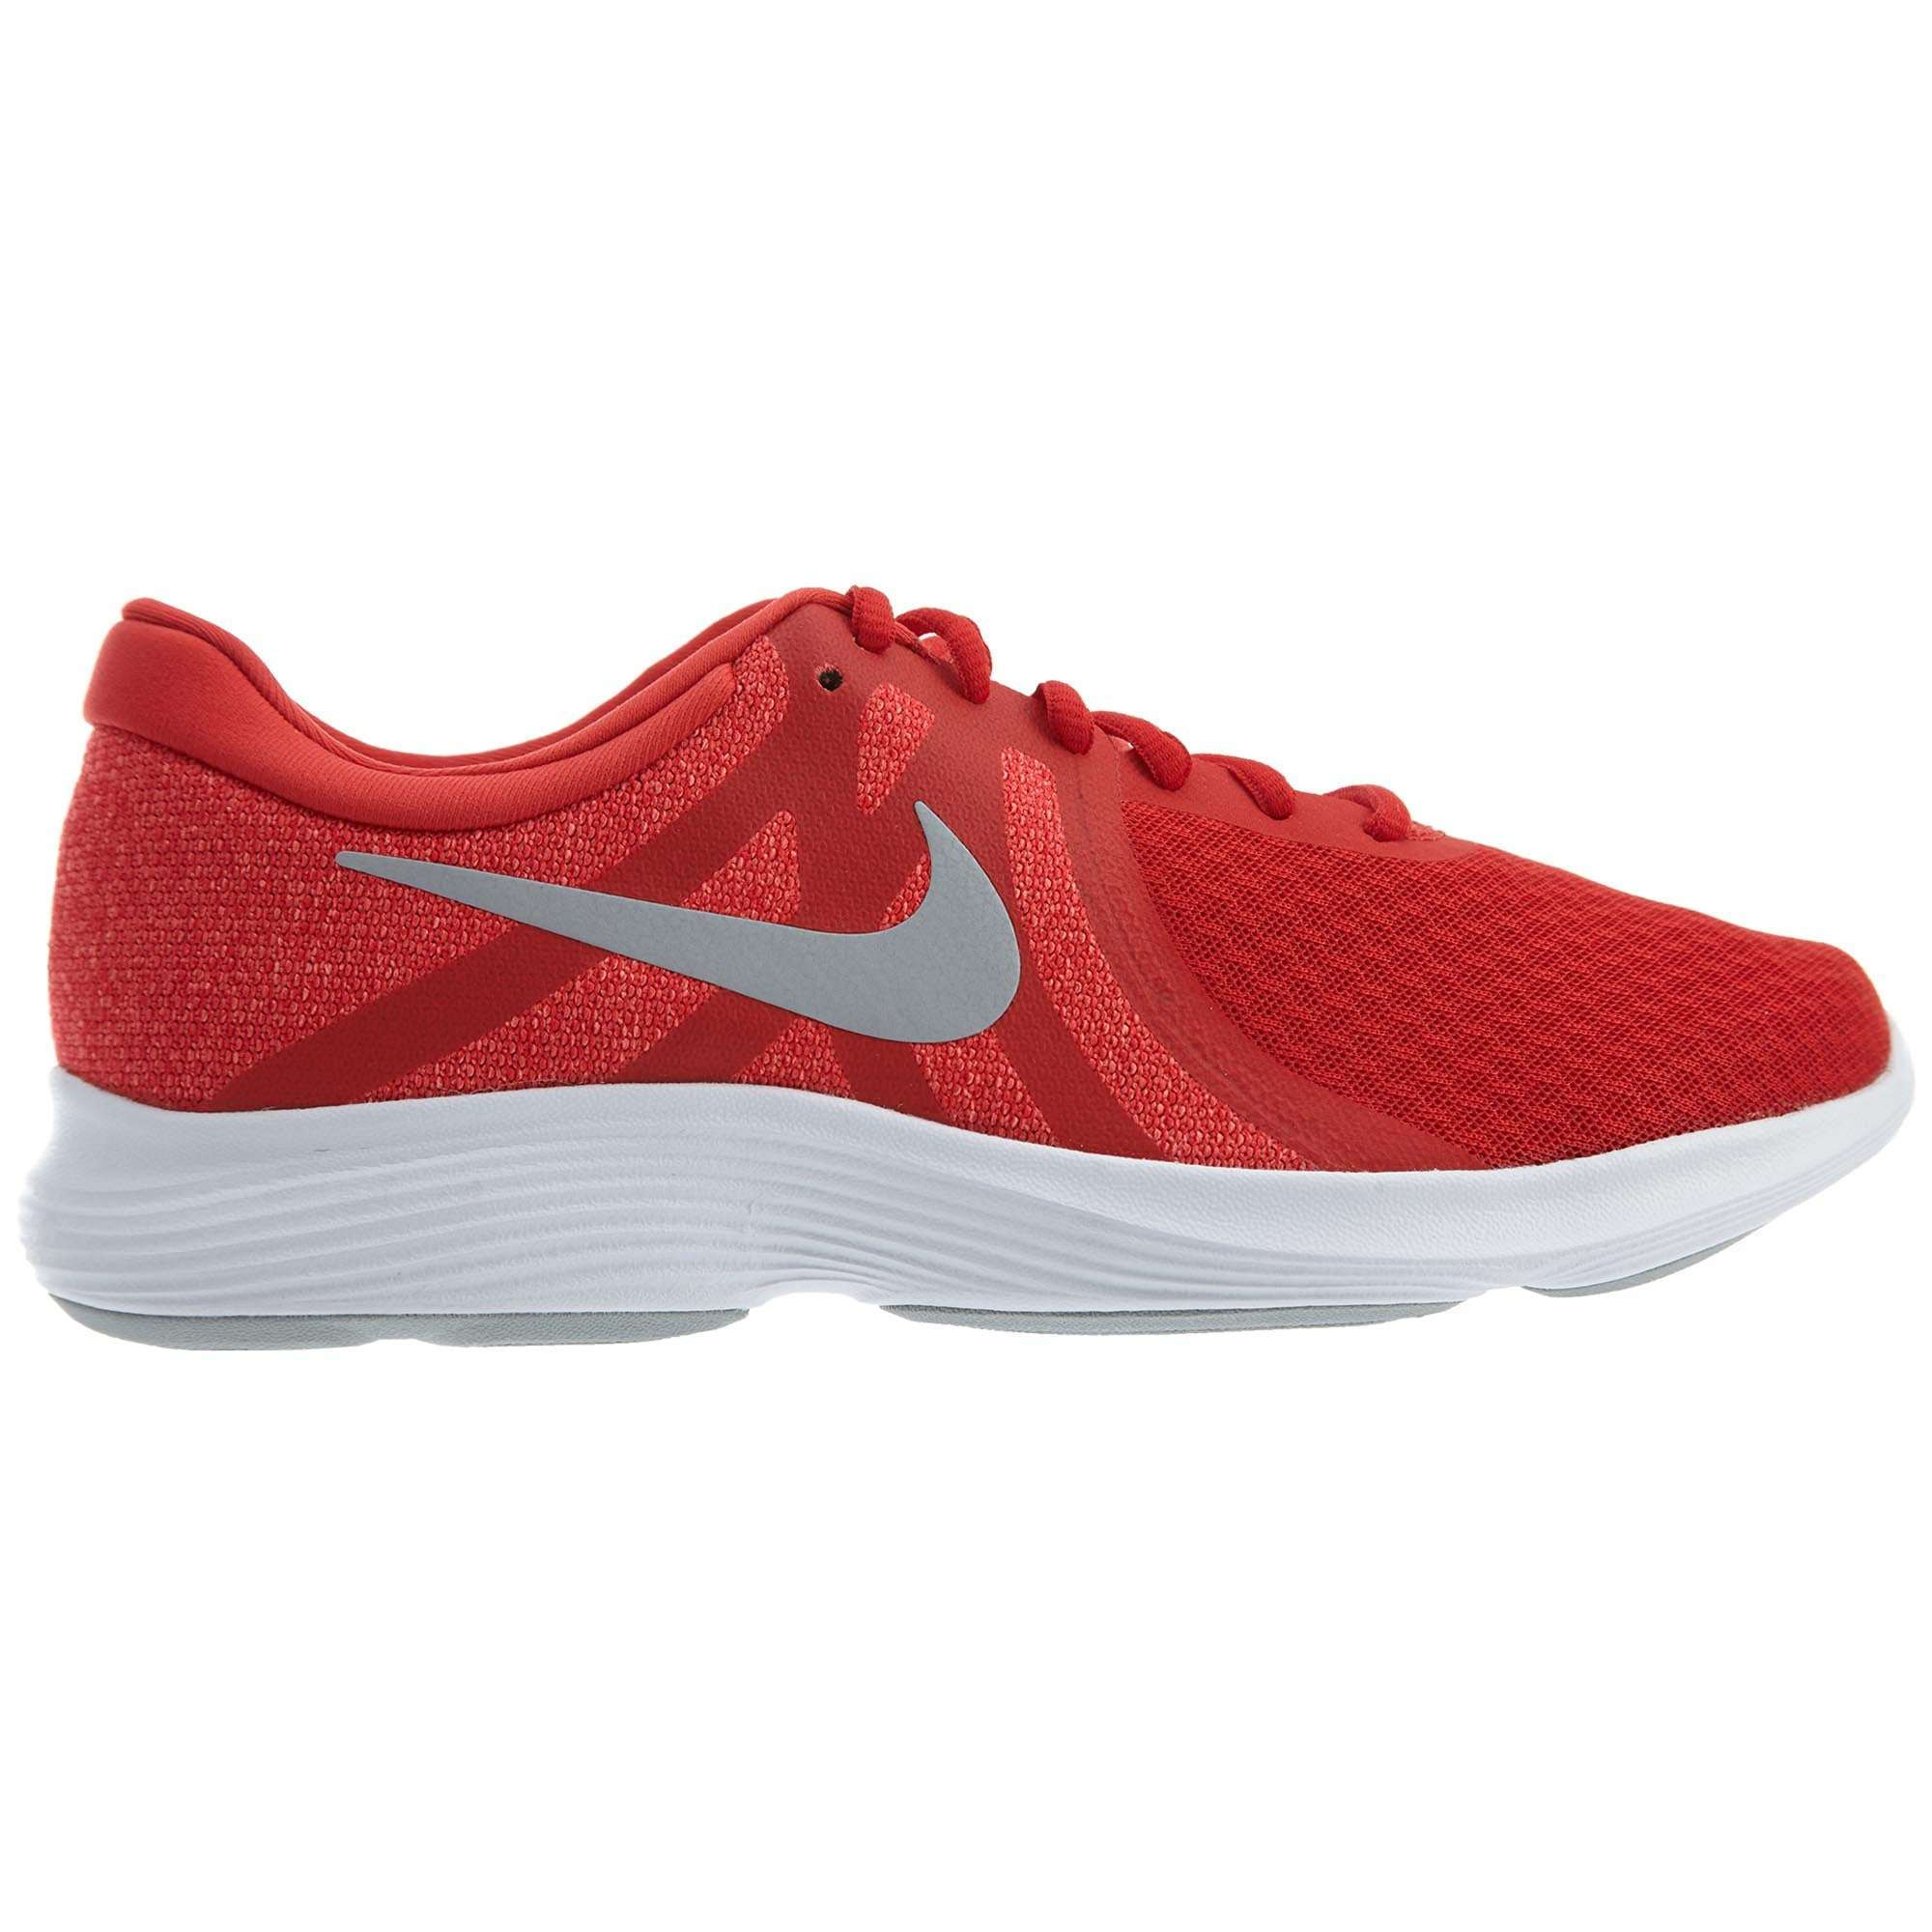 c3a9d532f5e56 Nike Revolution 4 Mens Style   908988-601 · NIKE   Athletic Shoes   Sneakers